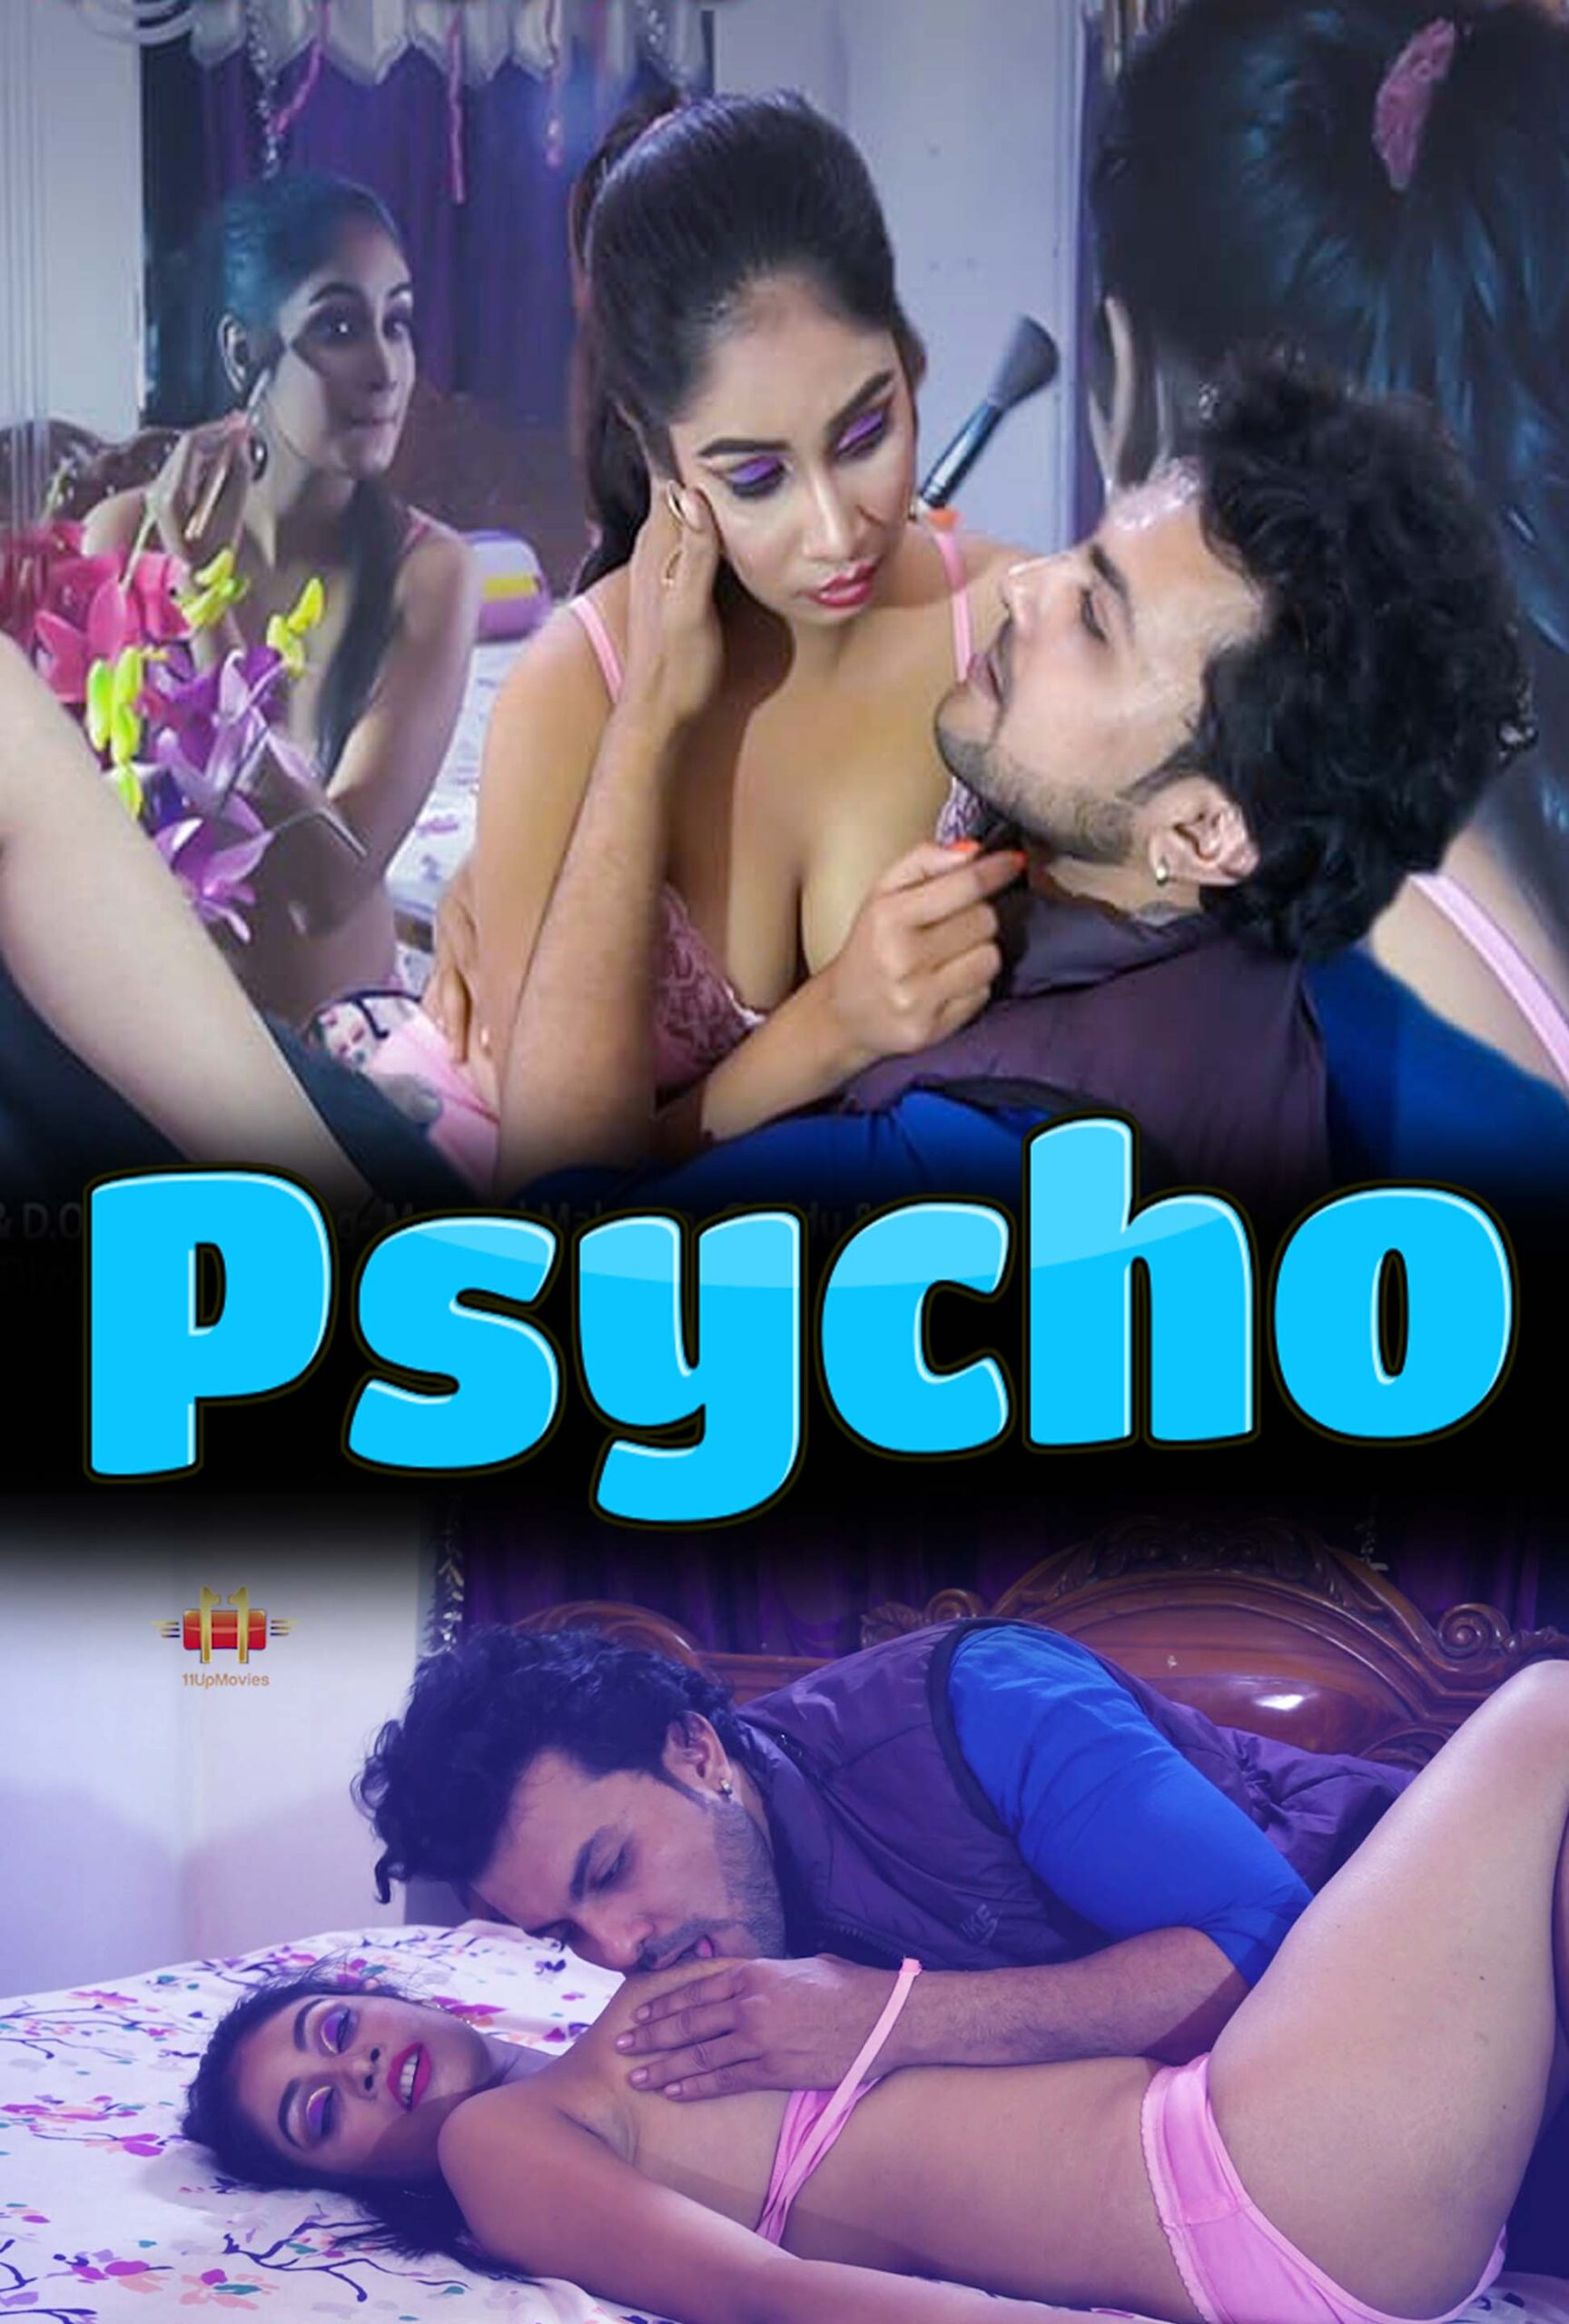 You are currently viewing Psycho 2021 11UpMovies Hindi S01E01 Hot Web Series 720p HDRip 200MB Download & Watch Online